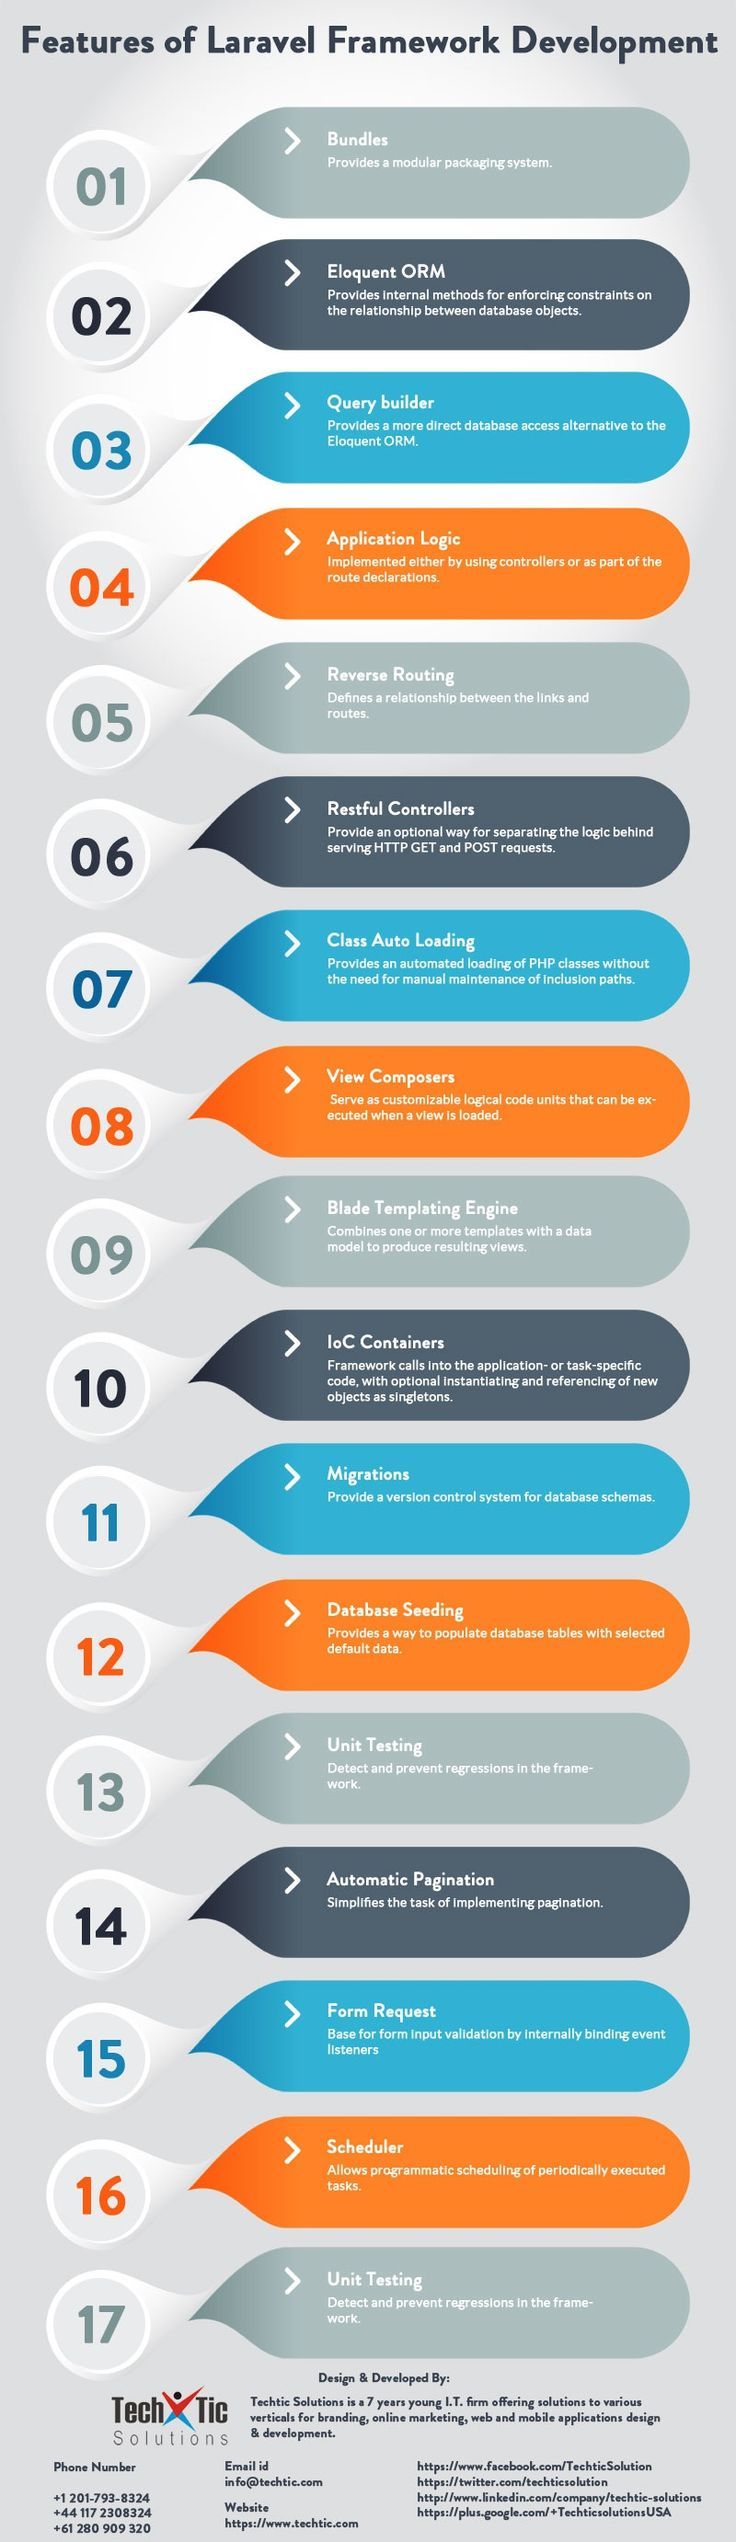 In Infographics, We are described Features of Laravel framework and its development process. Laravel Framework is one of the best web framework in 2016 era which is lightening fast and allows web artisans to use exquisite & sophisticated syntax. #LaravelDevelopmentCompany #LaravelDevelopment #LaravelDevelopmentServices #HireLaravelDevelopers #LaravelDevelopers #LaravelFramework #LaravelFrameworkDevelopment